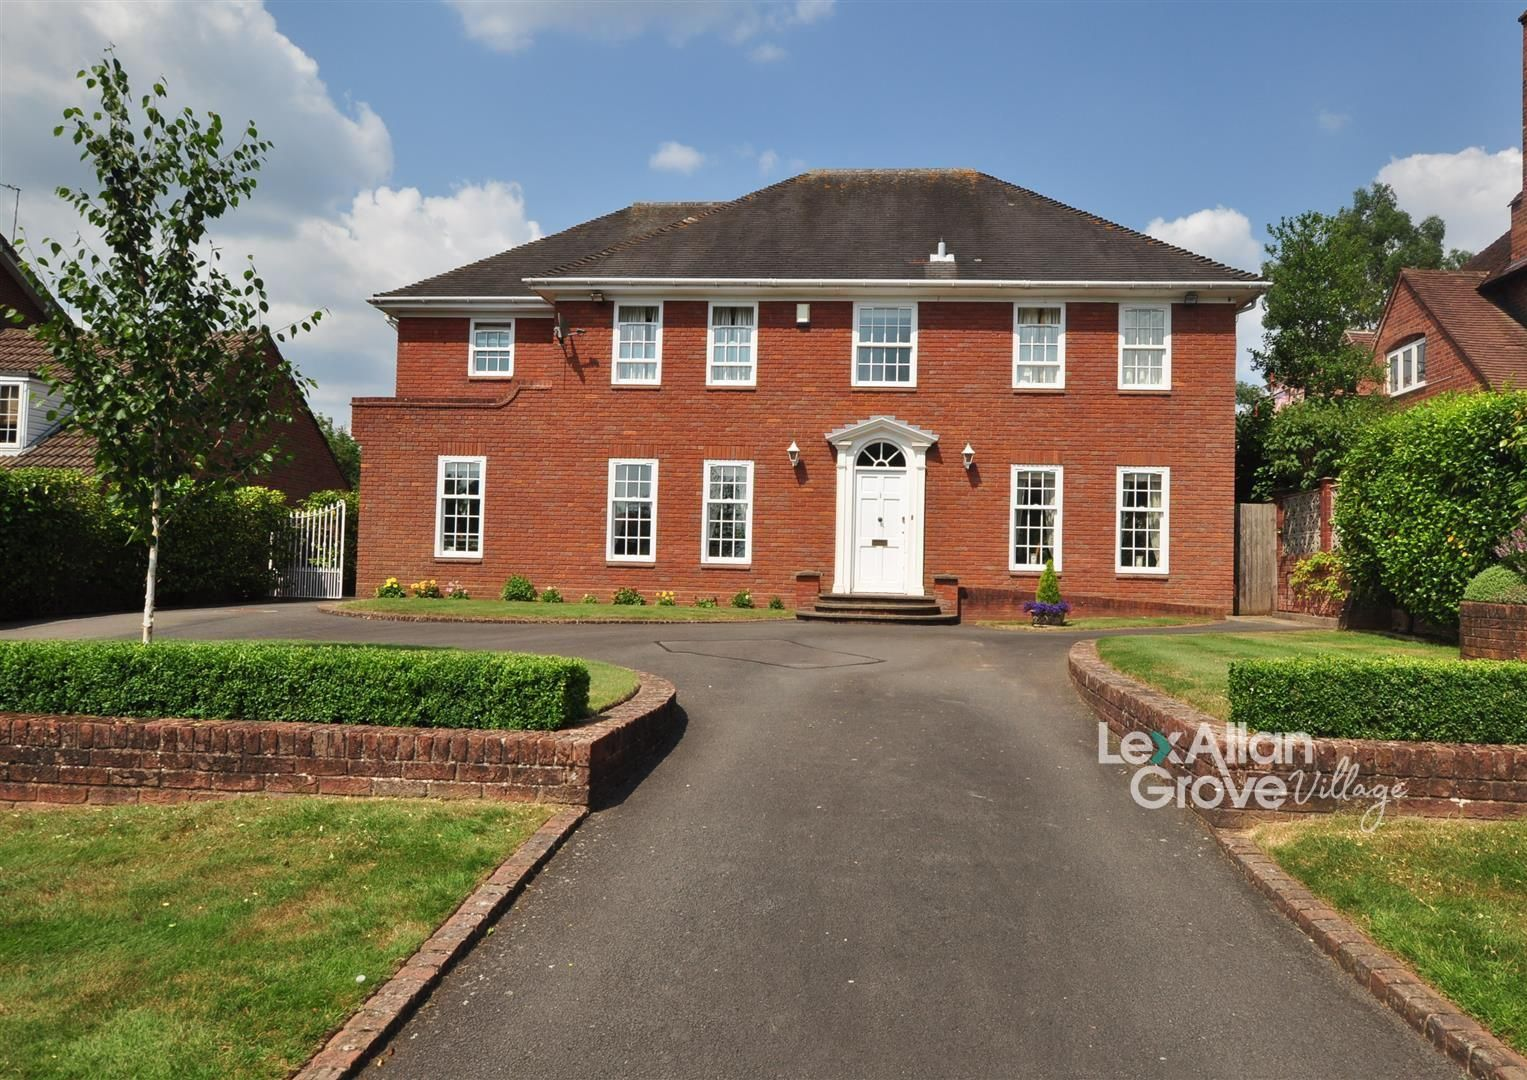 5 bed house for sale in Hagley, DY9